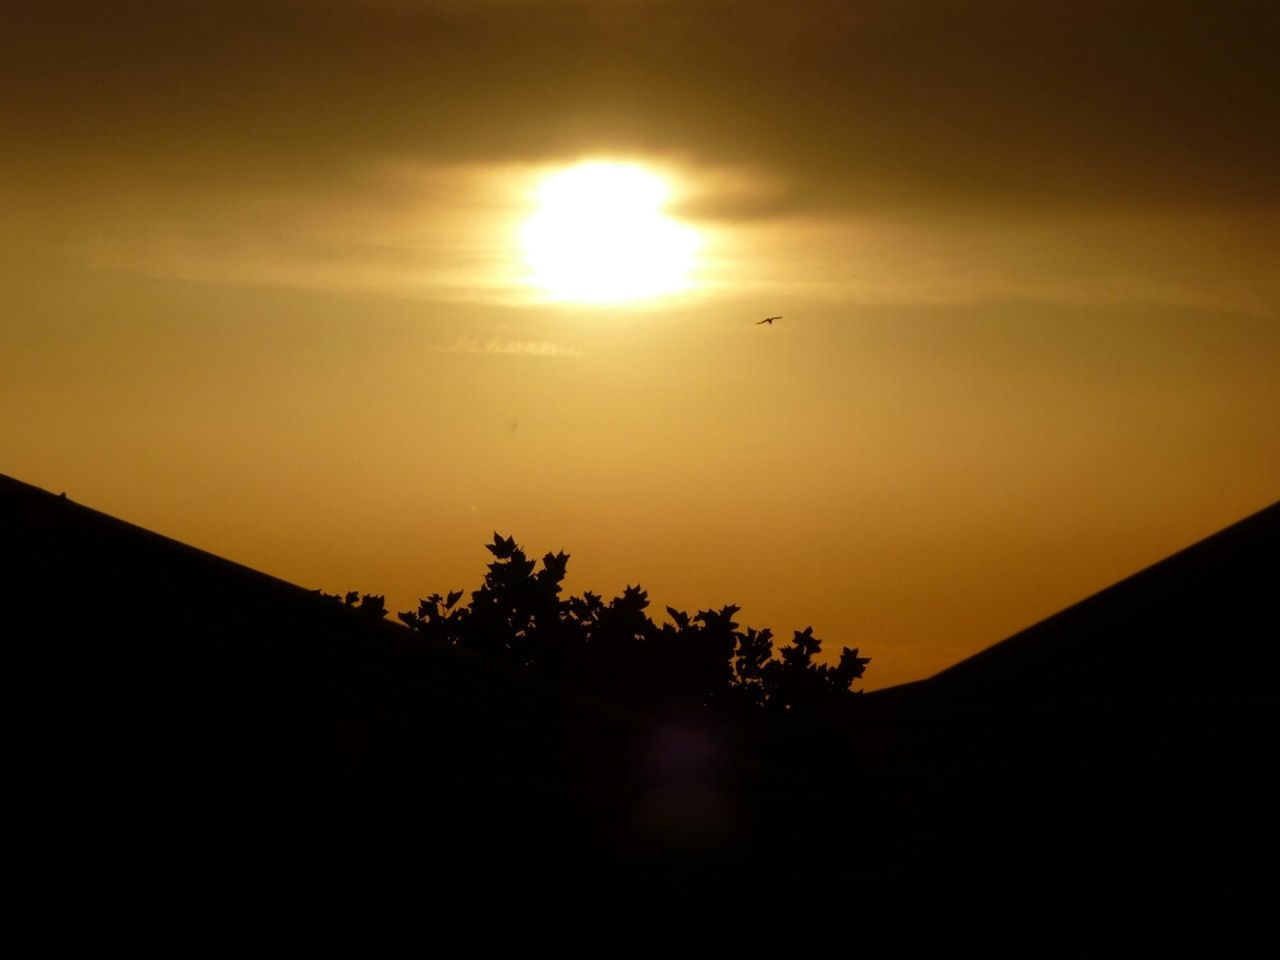 sunset, silhouette, nature, beauty in nature, scenics, sun, orange color, tranquil scene, sky, tranquility, no people, tree, outdoors, landscape, day